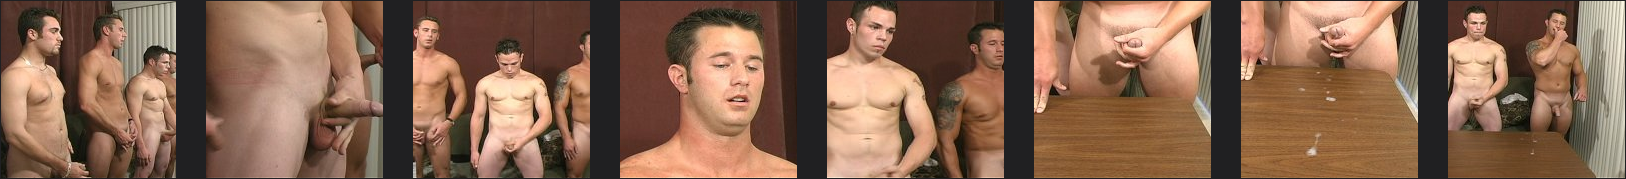 4 straight men jerking off together in a cum shooting contest